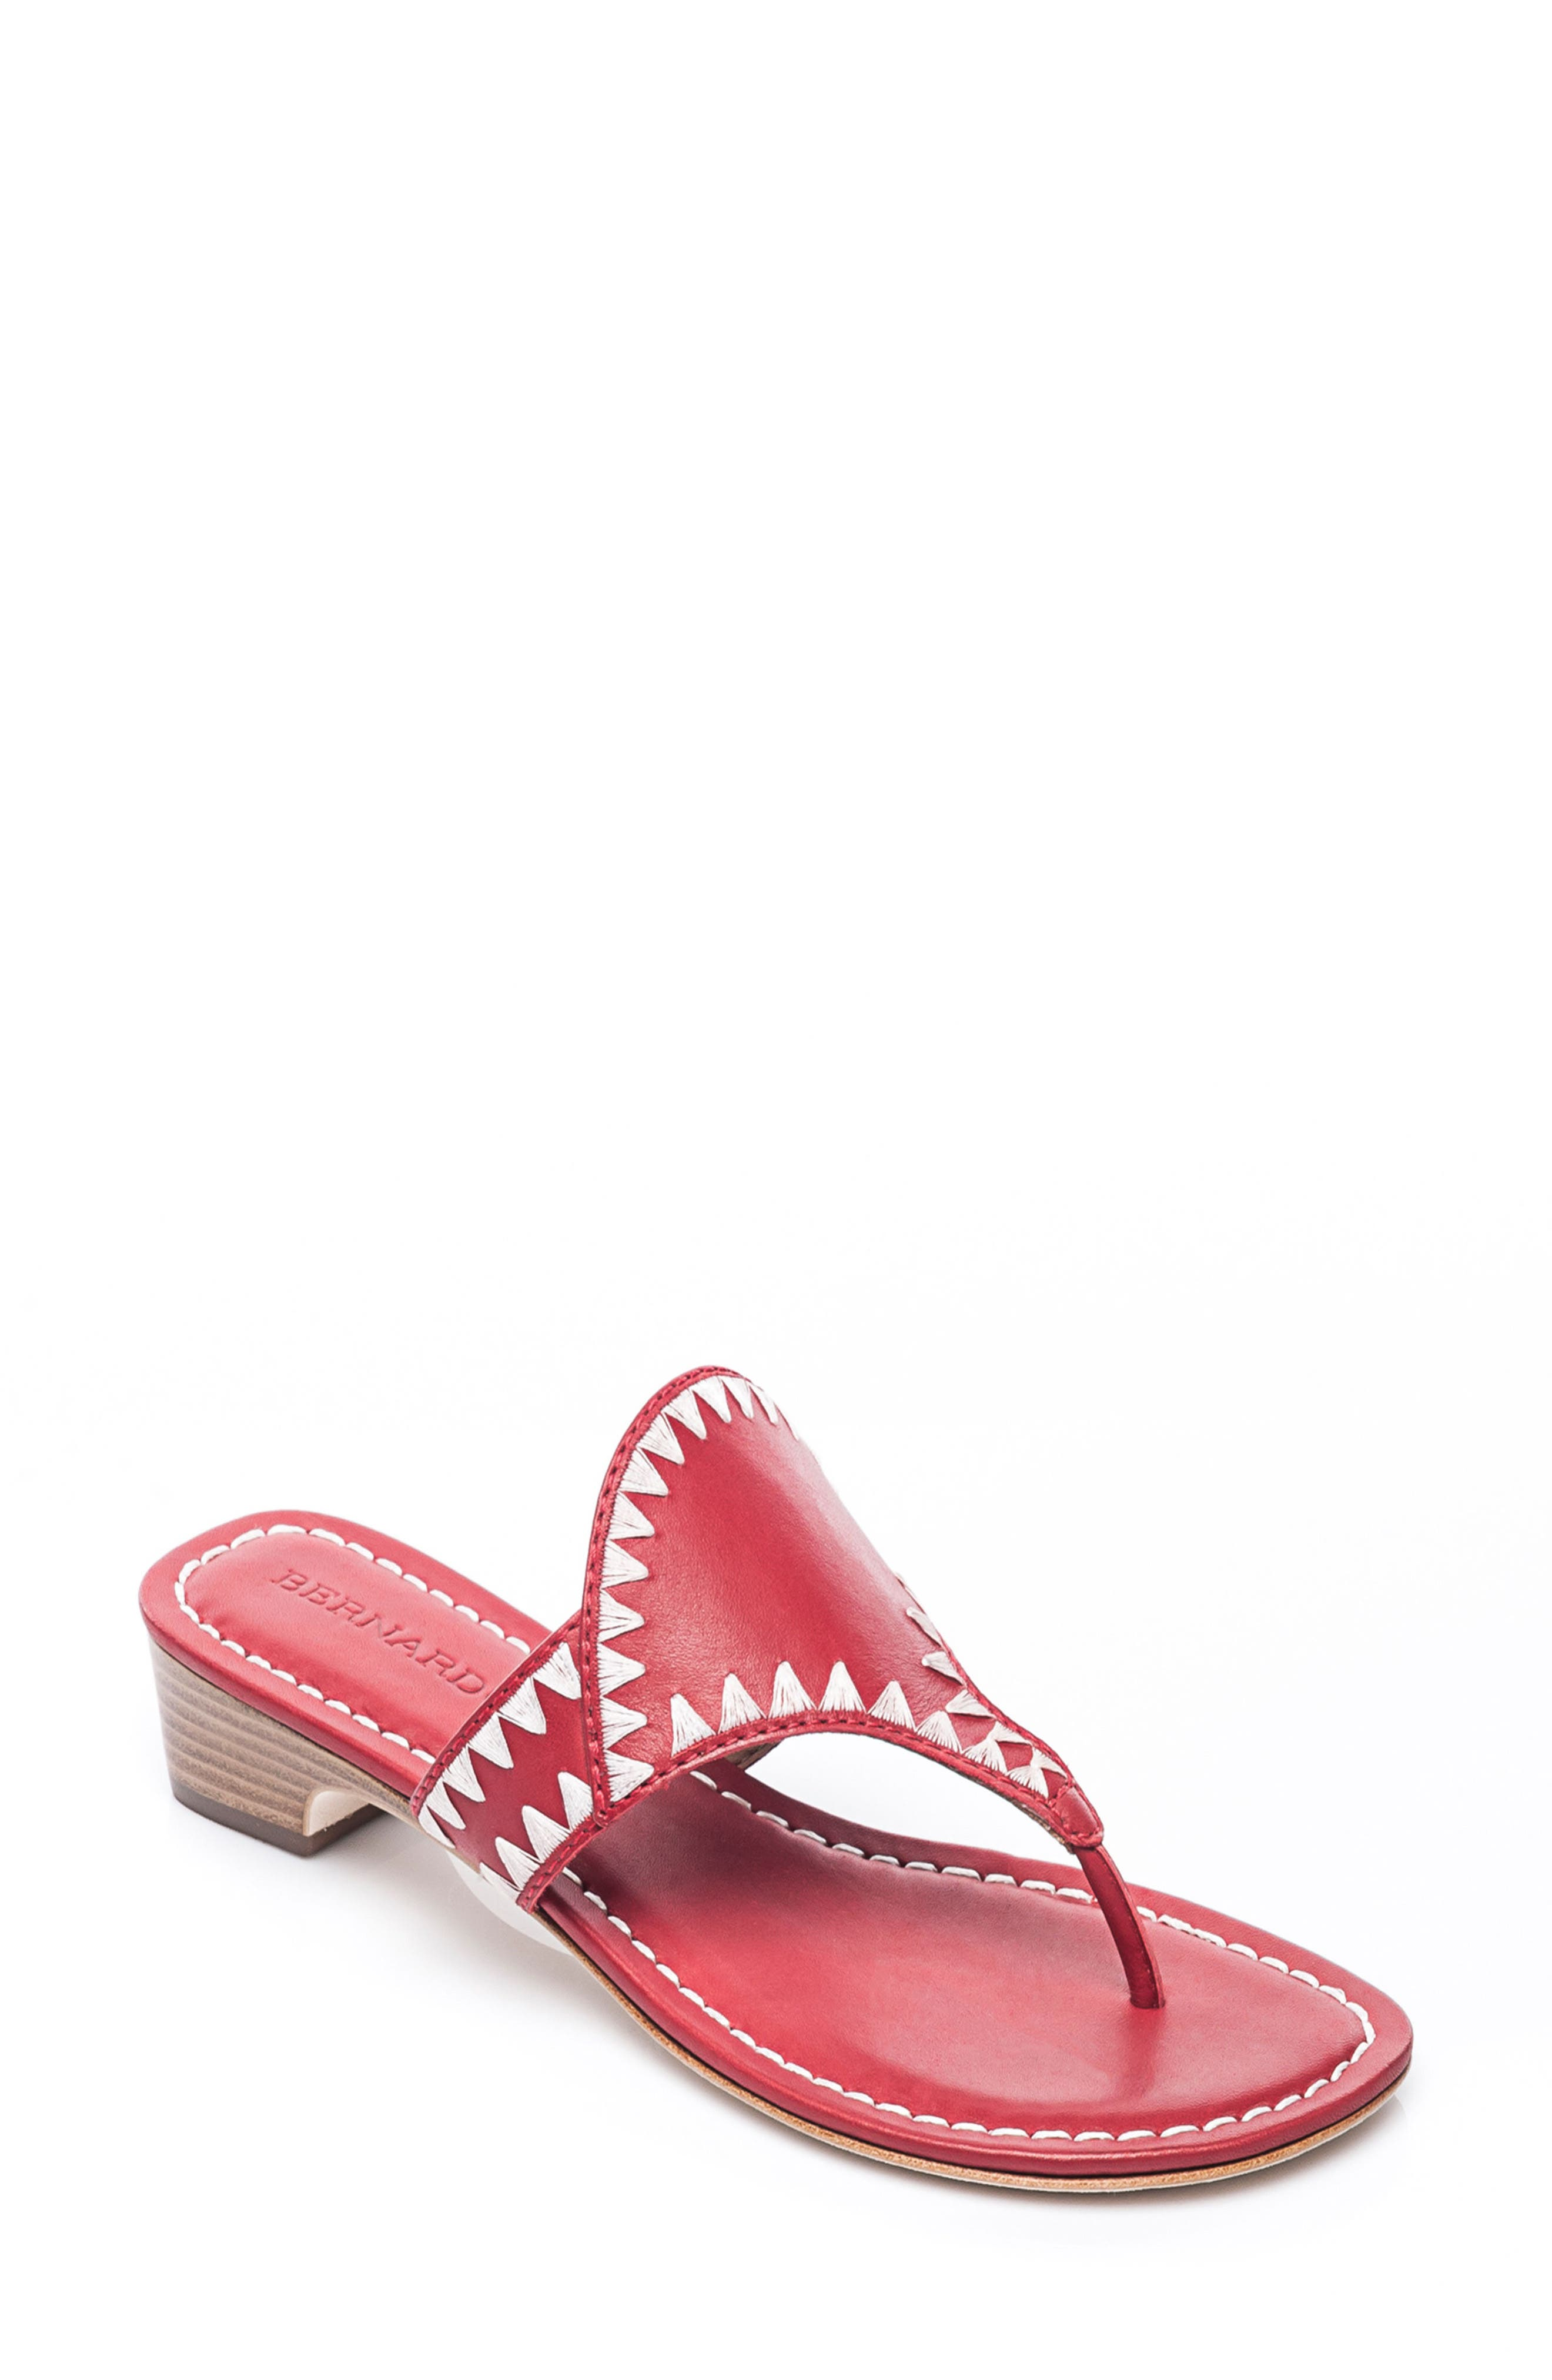 Bernardo Gabi Embroidered Sandal,                         Main,                         color, Red Leather